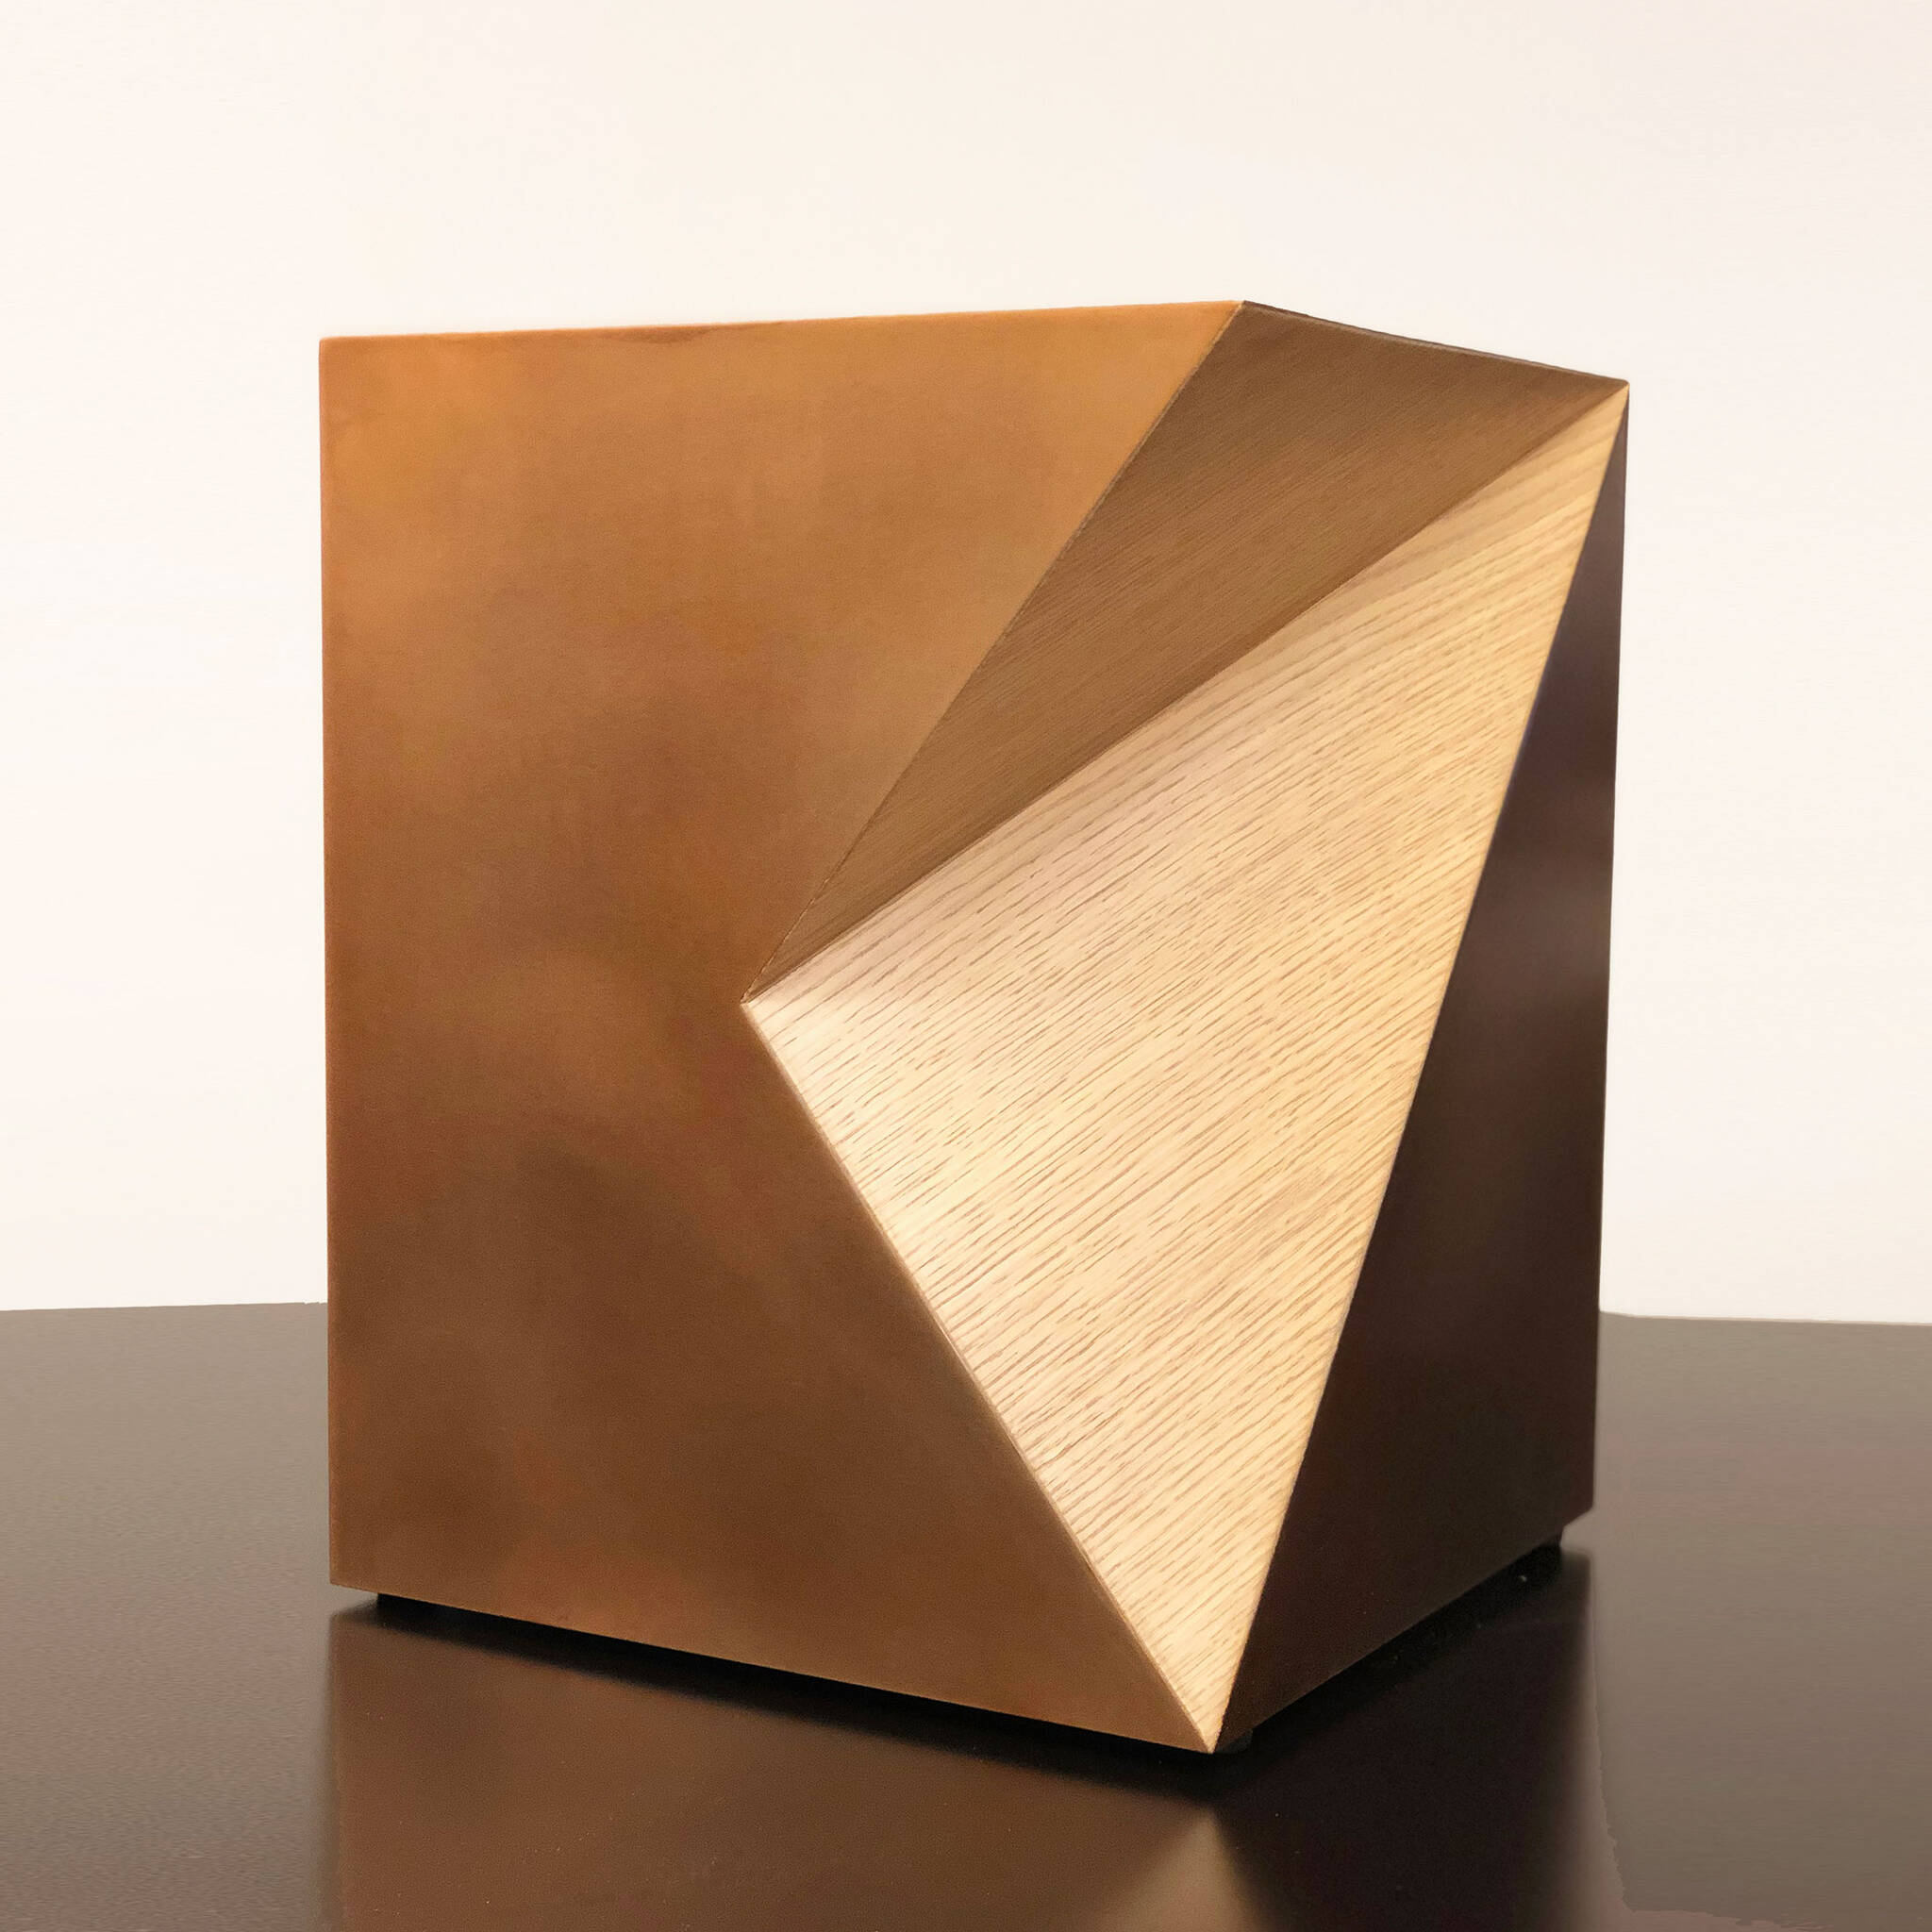 Side table of a guestroom module of the Modular AC Hotel project located at 842 Sixth Avenue in NoMad, New York City designed by the architecture studio Danny Forster & Architecture